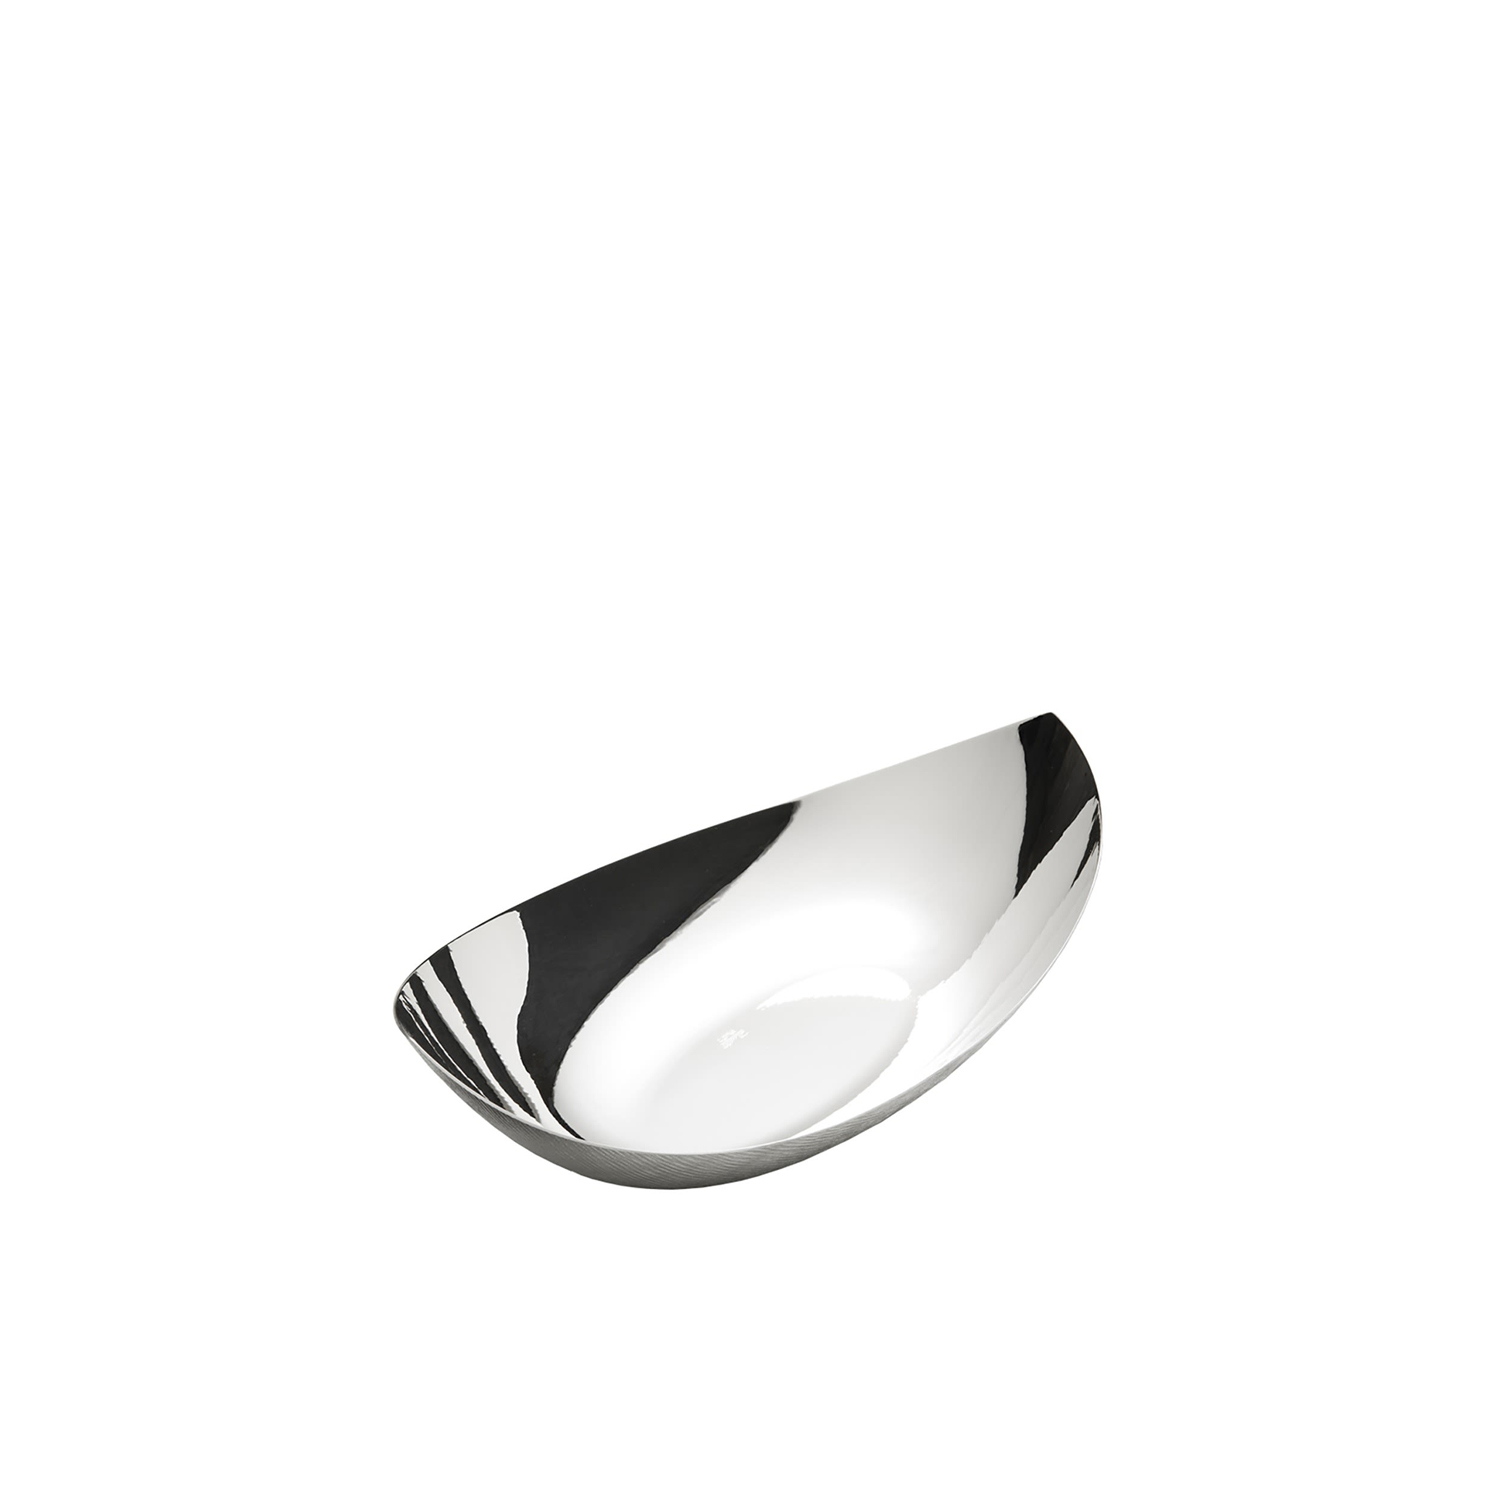 Magnolia Bowl - A perfectly formed and crafted silver bowl, the Magnolia screams class and elegance and sits perfectly on a dining table or as ornamental decoration in your home.